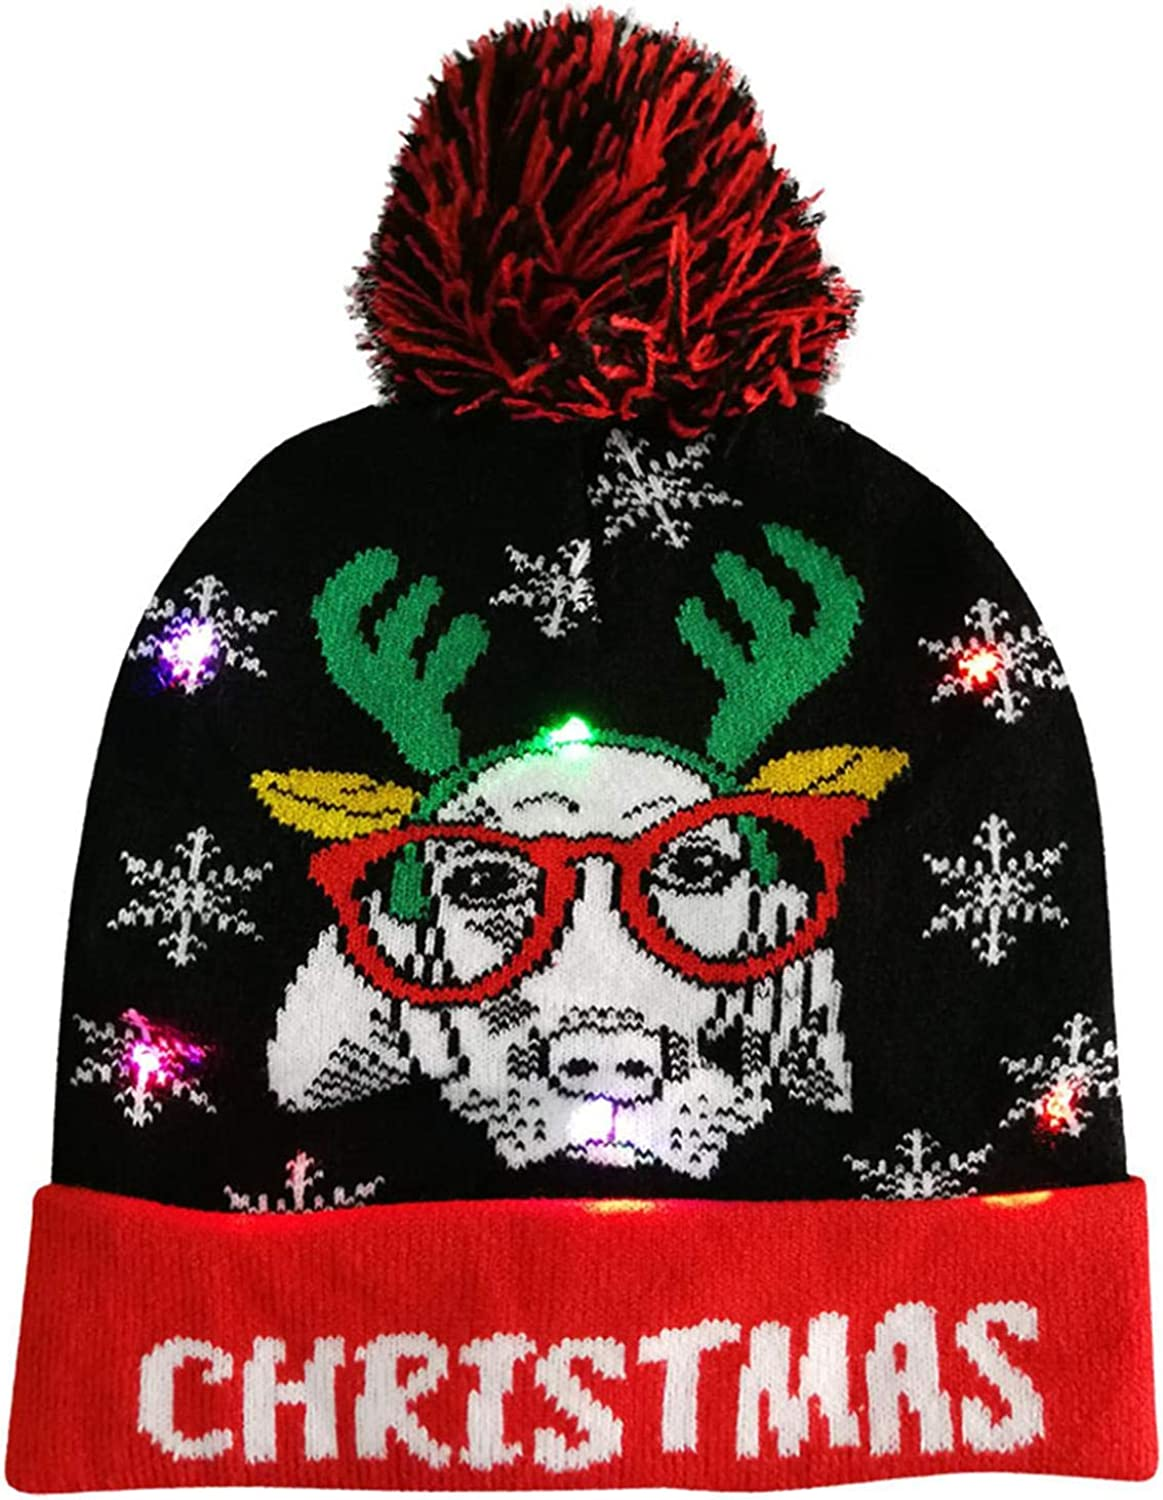 Women Men Beanie Hat LED Light-up Xmas Cap Winter Knit Slouchy Warm Light Up Christmas Hat Fashion Sweater Holiday Party Hat